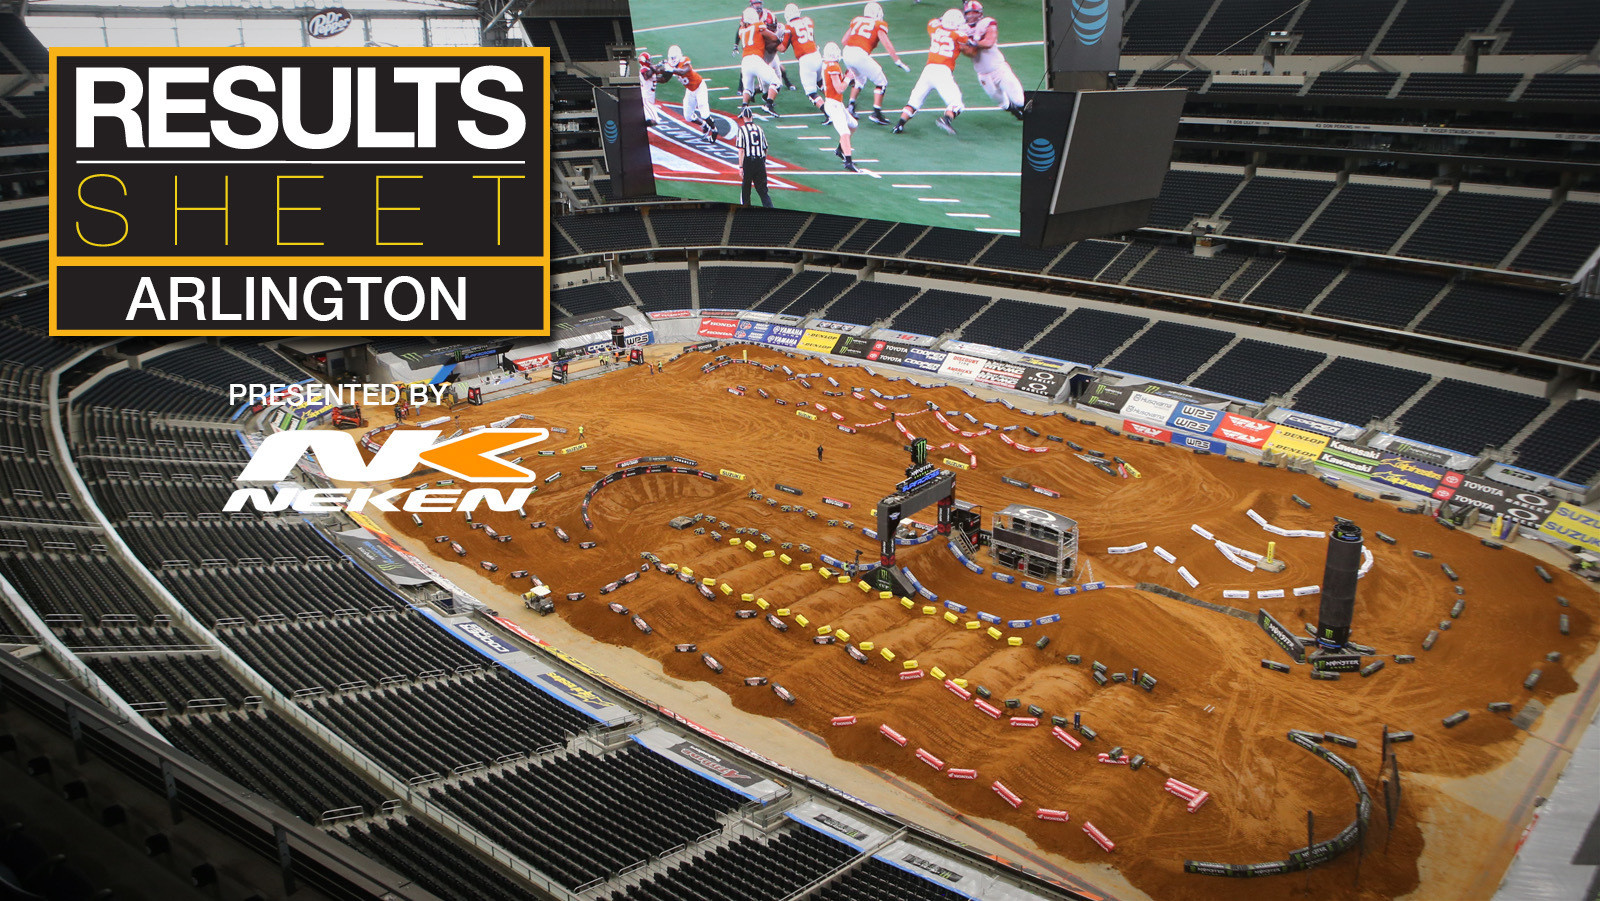 Results Sheet: 2019 Arlington Supercross